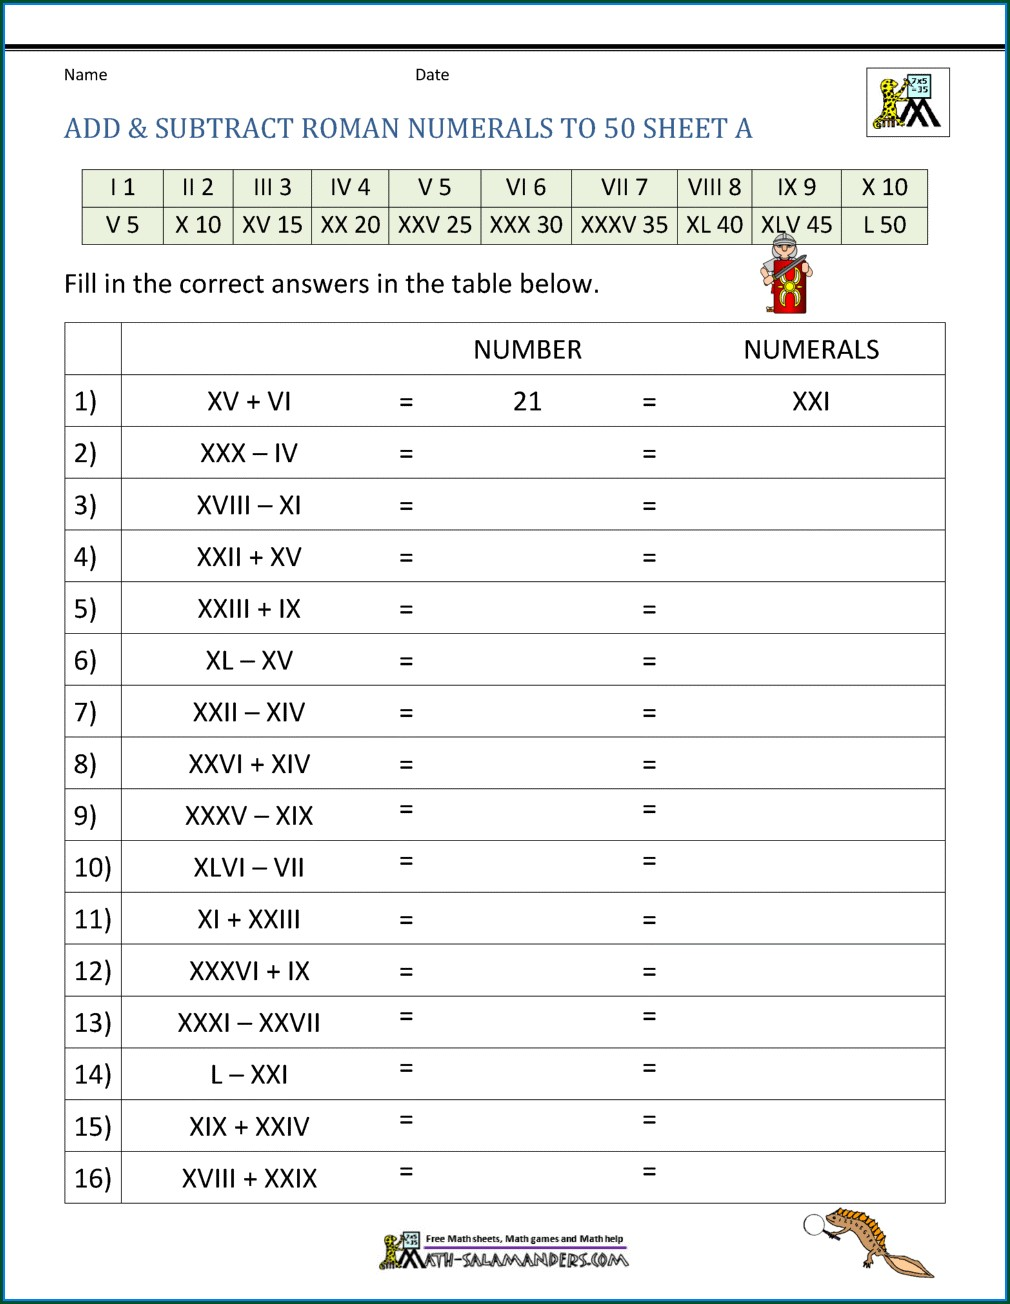 Roman Numeral Worksheet For Year 6